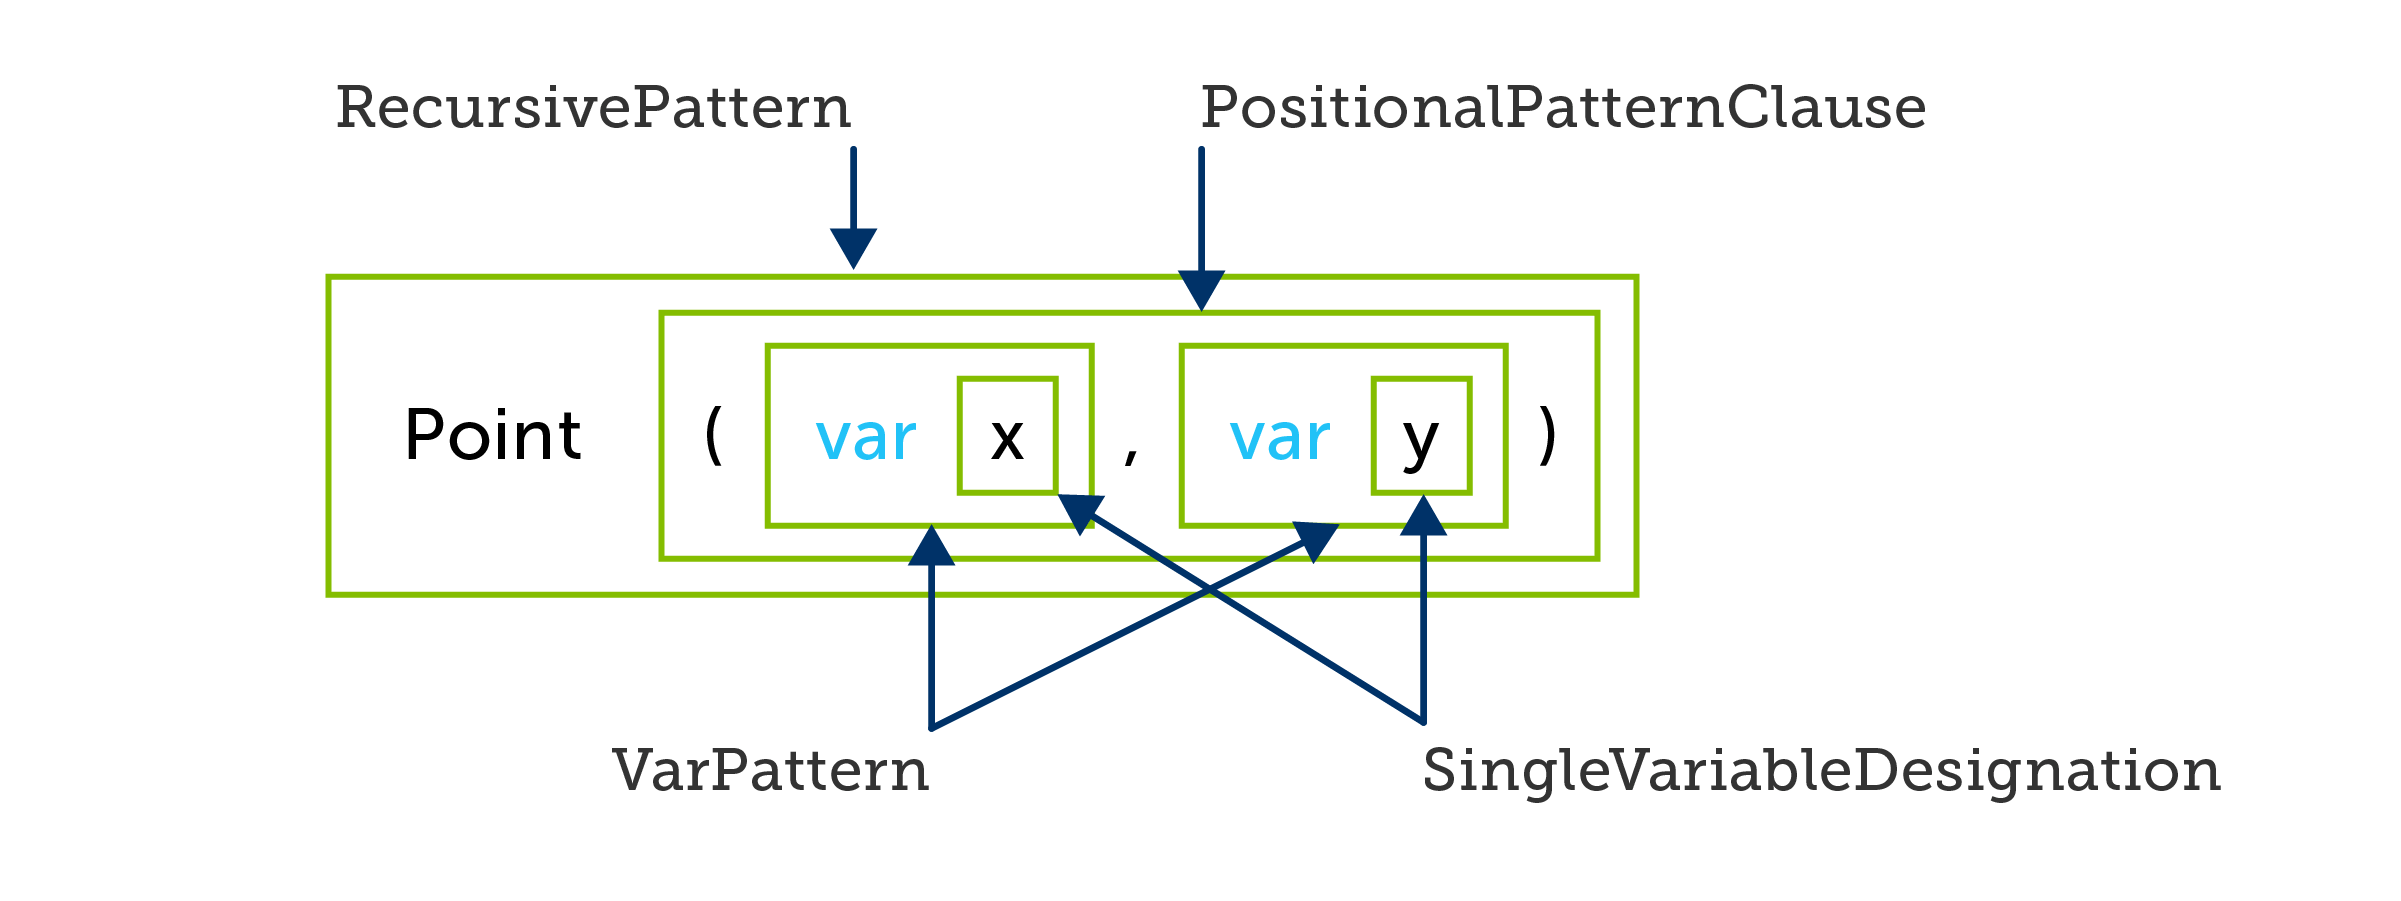 C# positional pattern introducing and then using implicitly typed variables